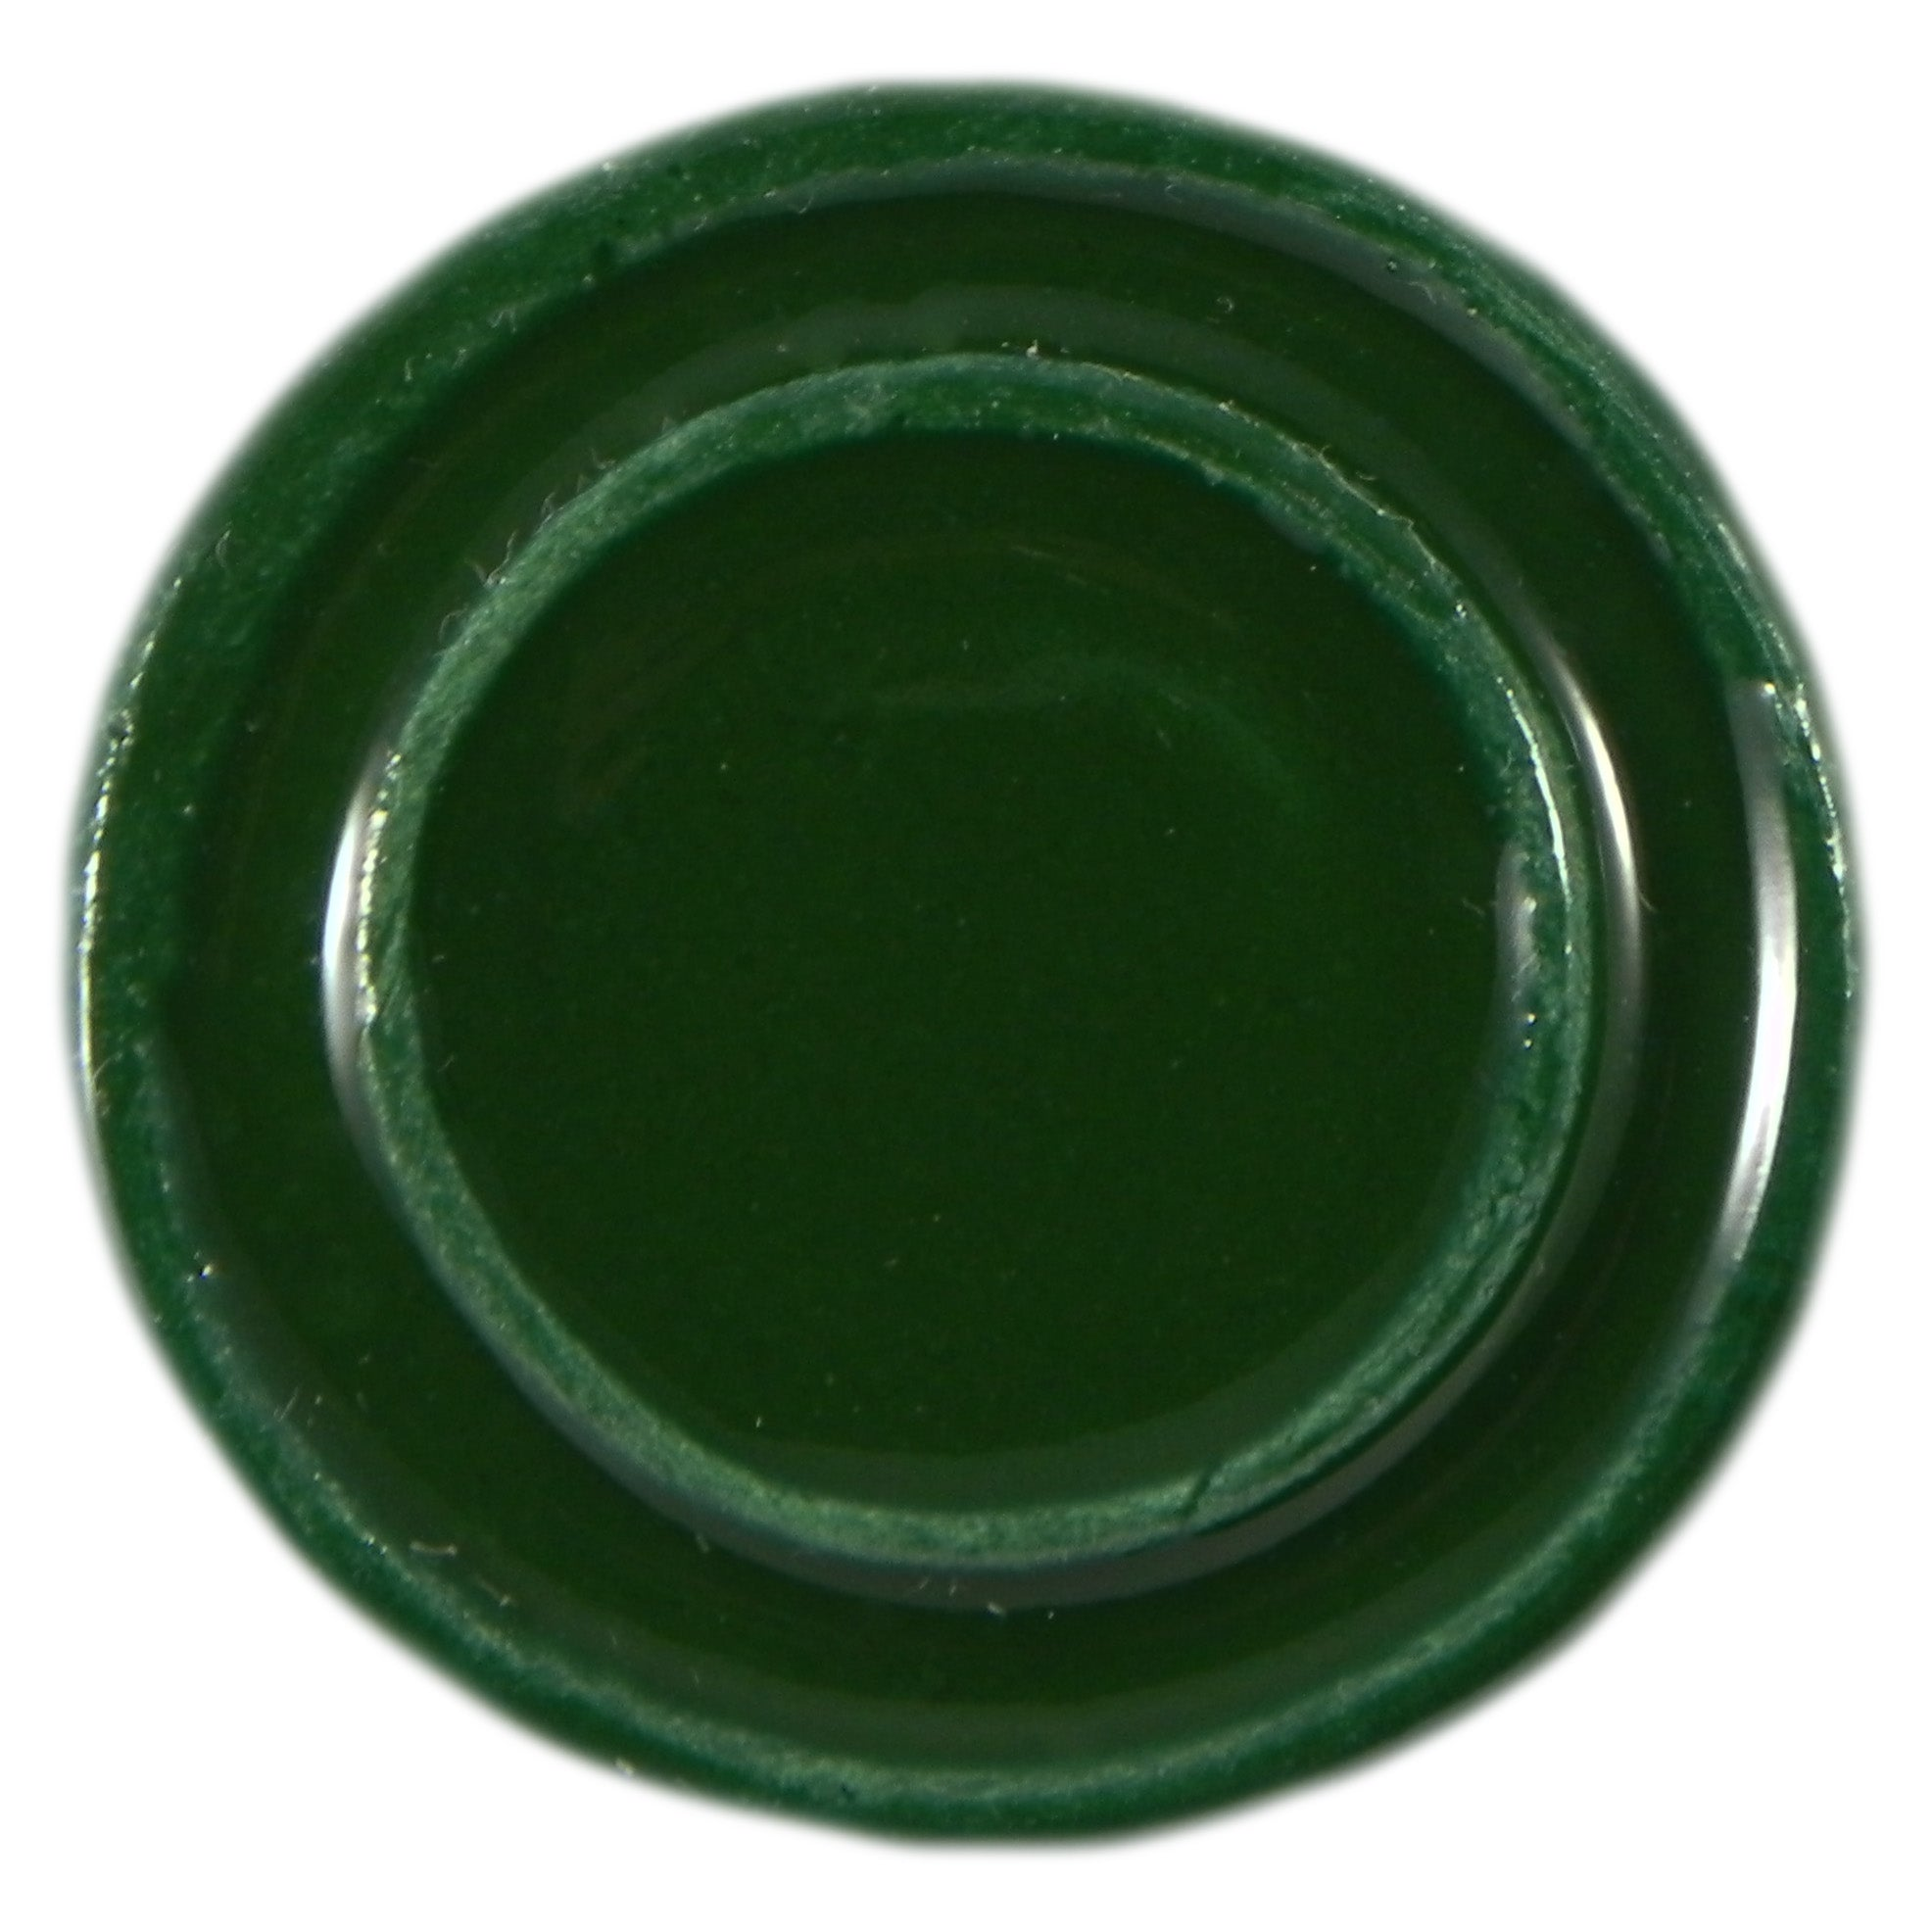 Nl37 Hunter Green Standard Ceramic